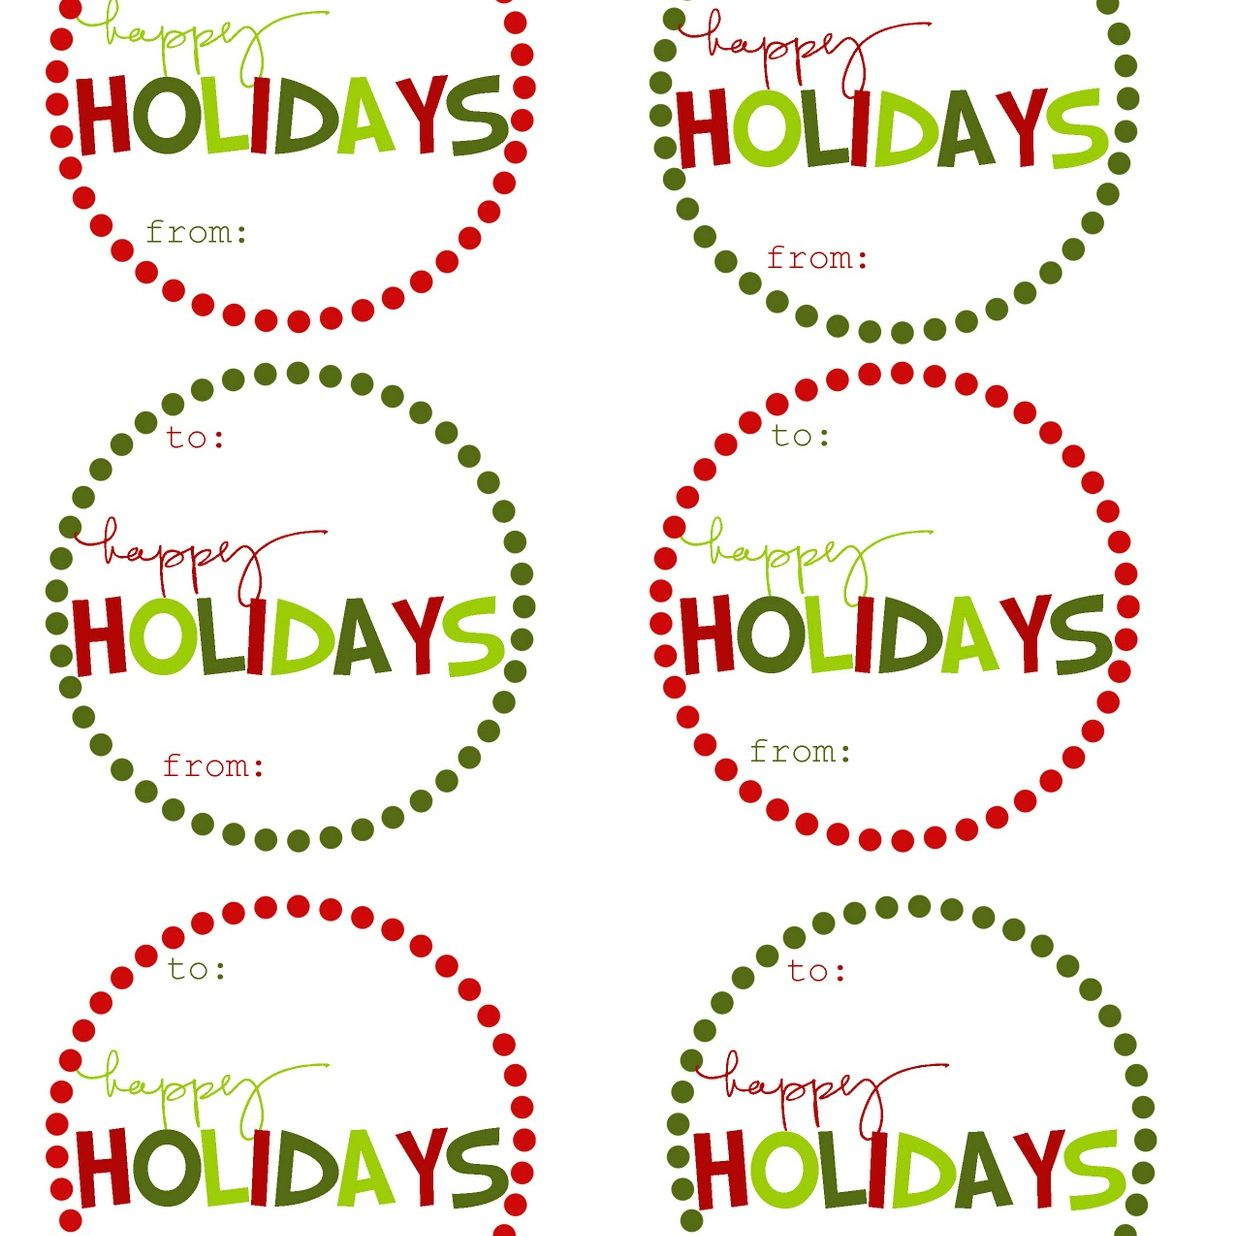 40 Sets Of Free Printable Christmas Gift Tags - Free Online Gift Tags Printable